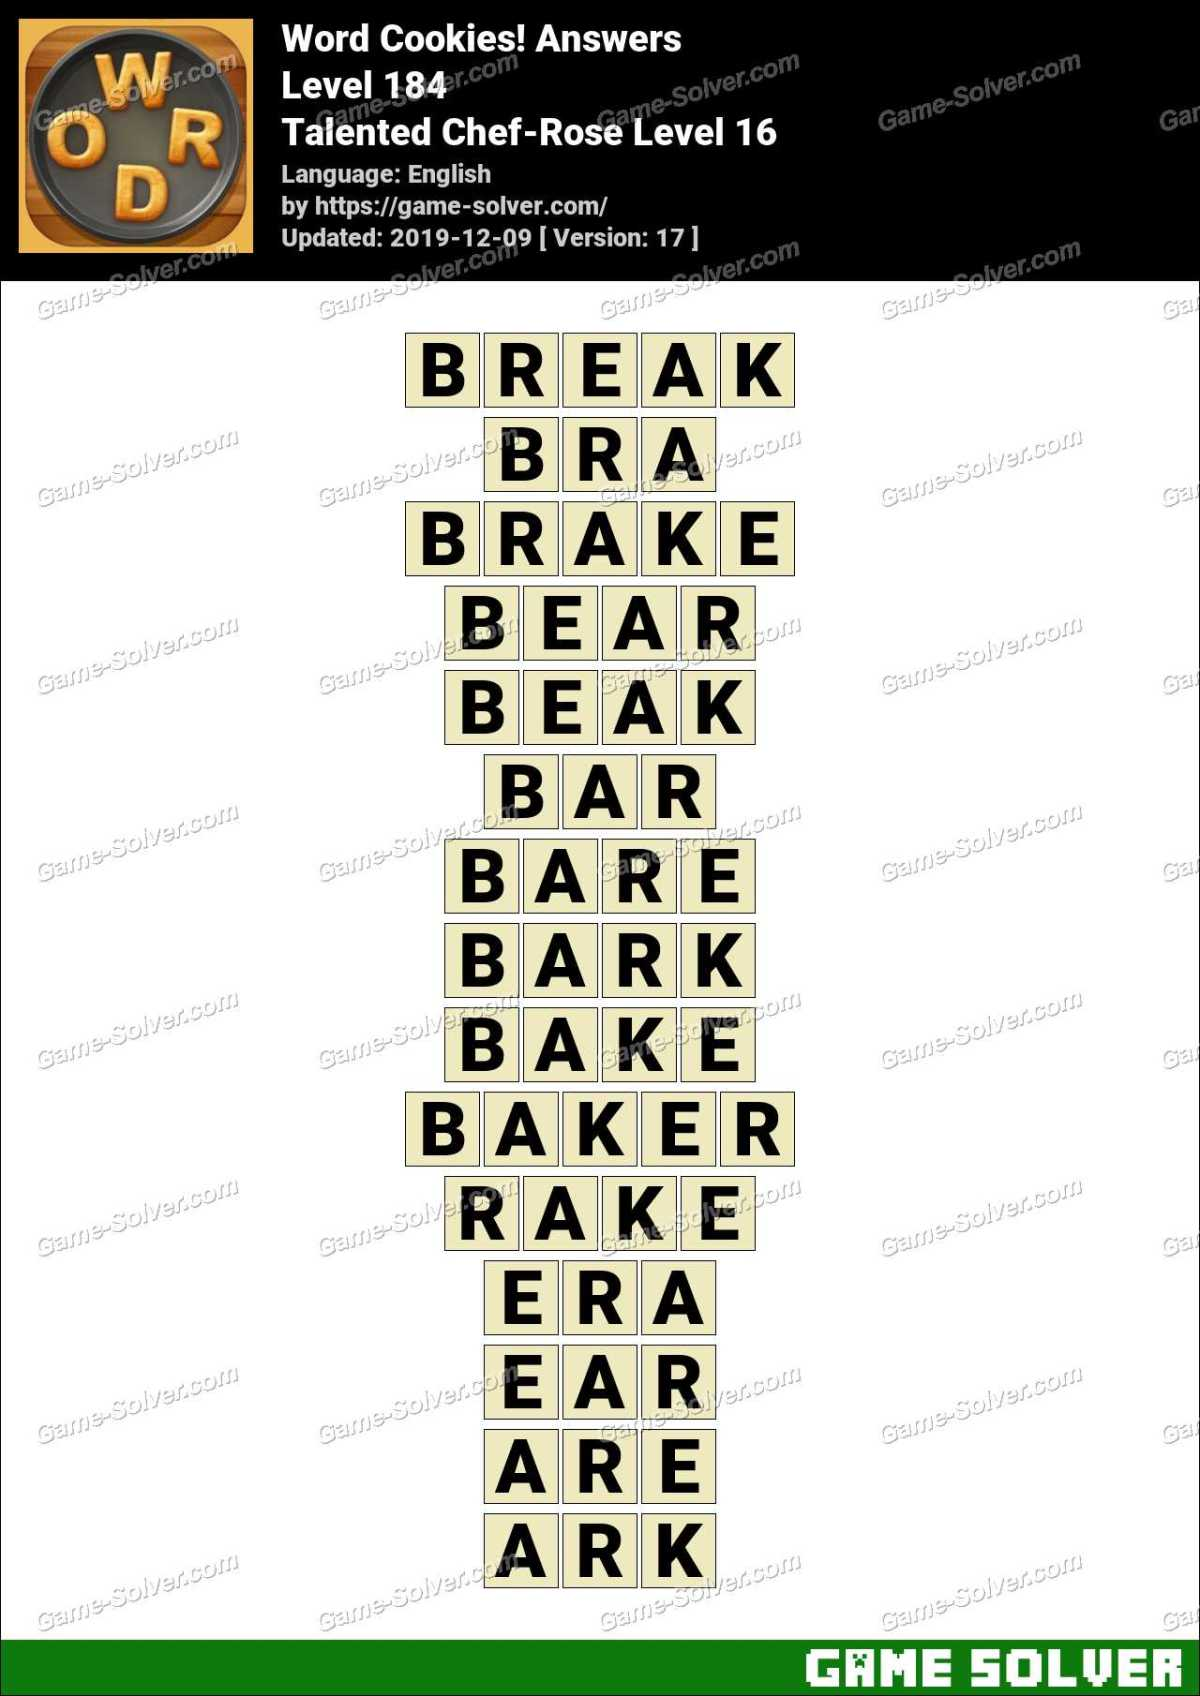 Word Cookies Talented Chef-Rose Level 16 Answers